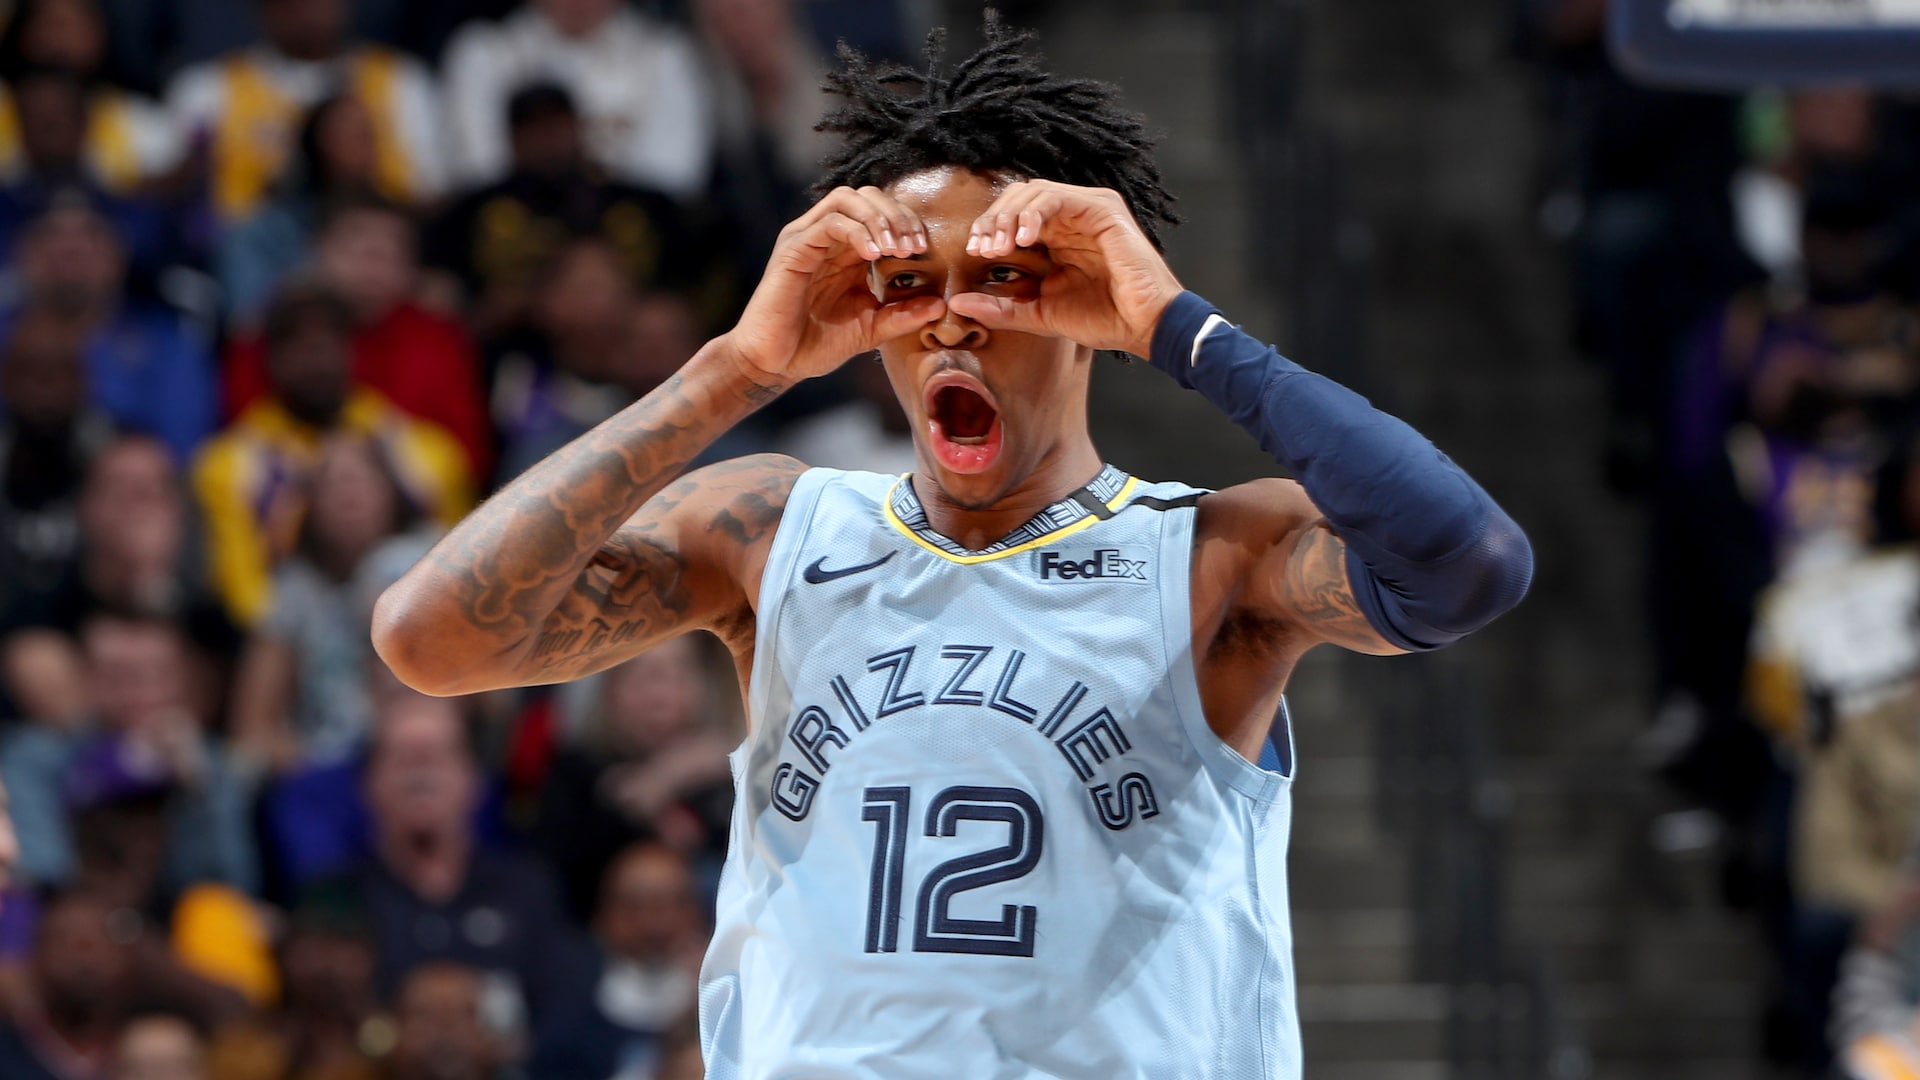 Ja Morant wins 2019-20 Kia NBA Rookie of the Year Award